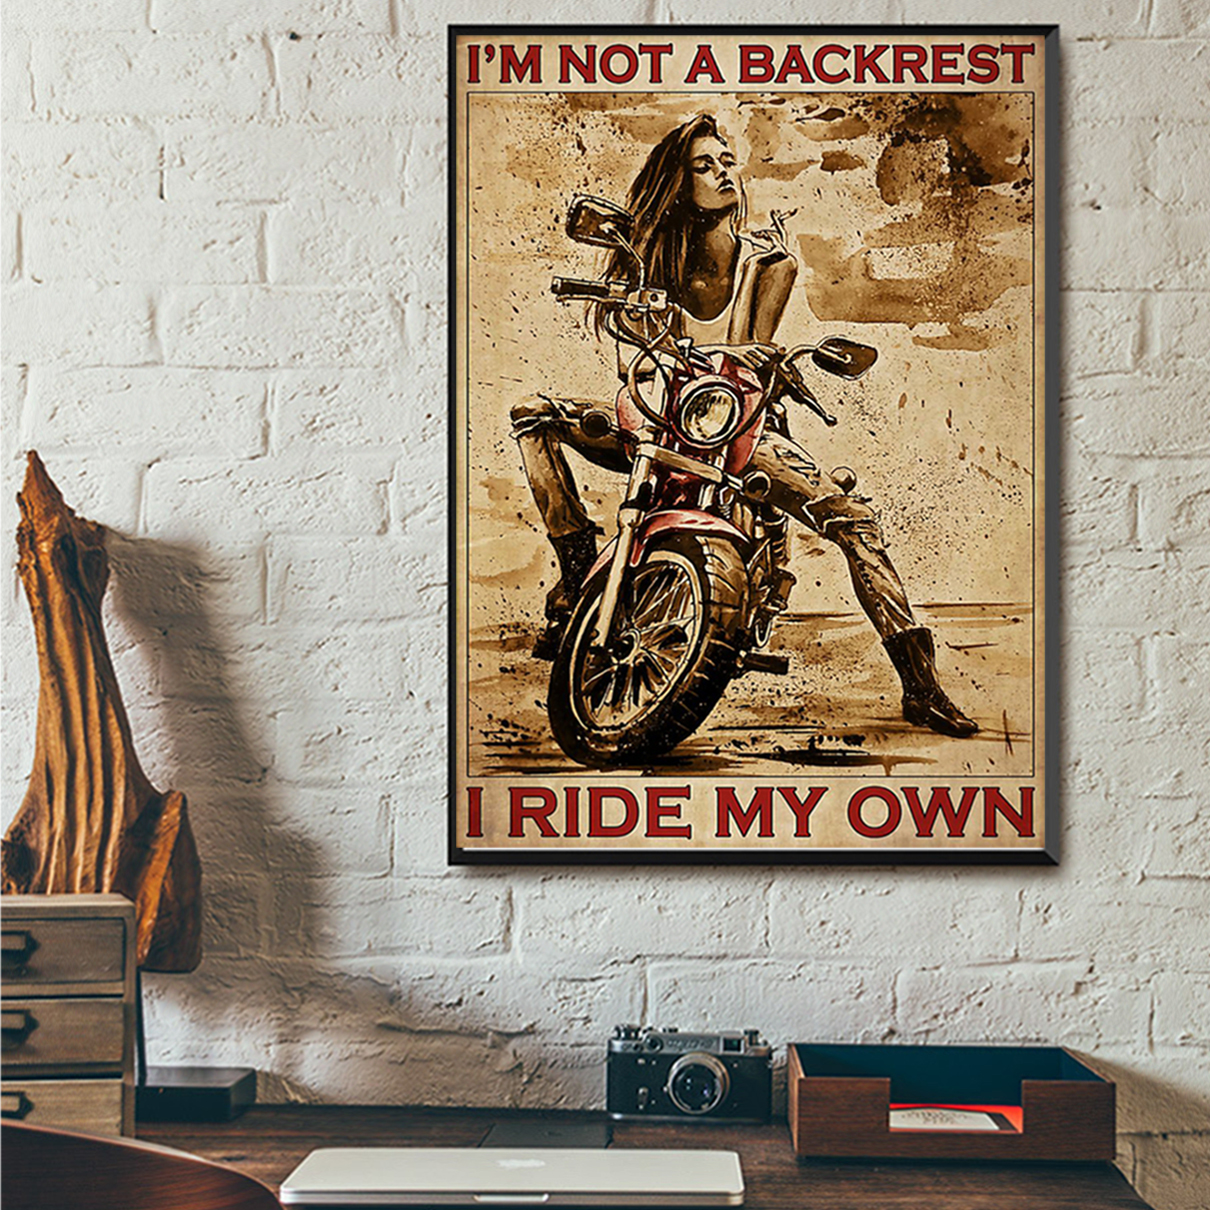 Motorcycle girl I'm not backrest I ride my own poster A1